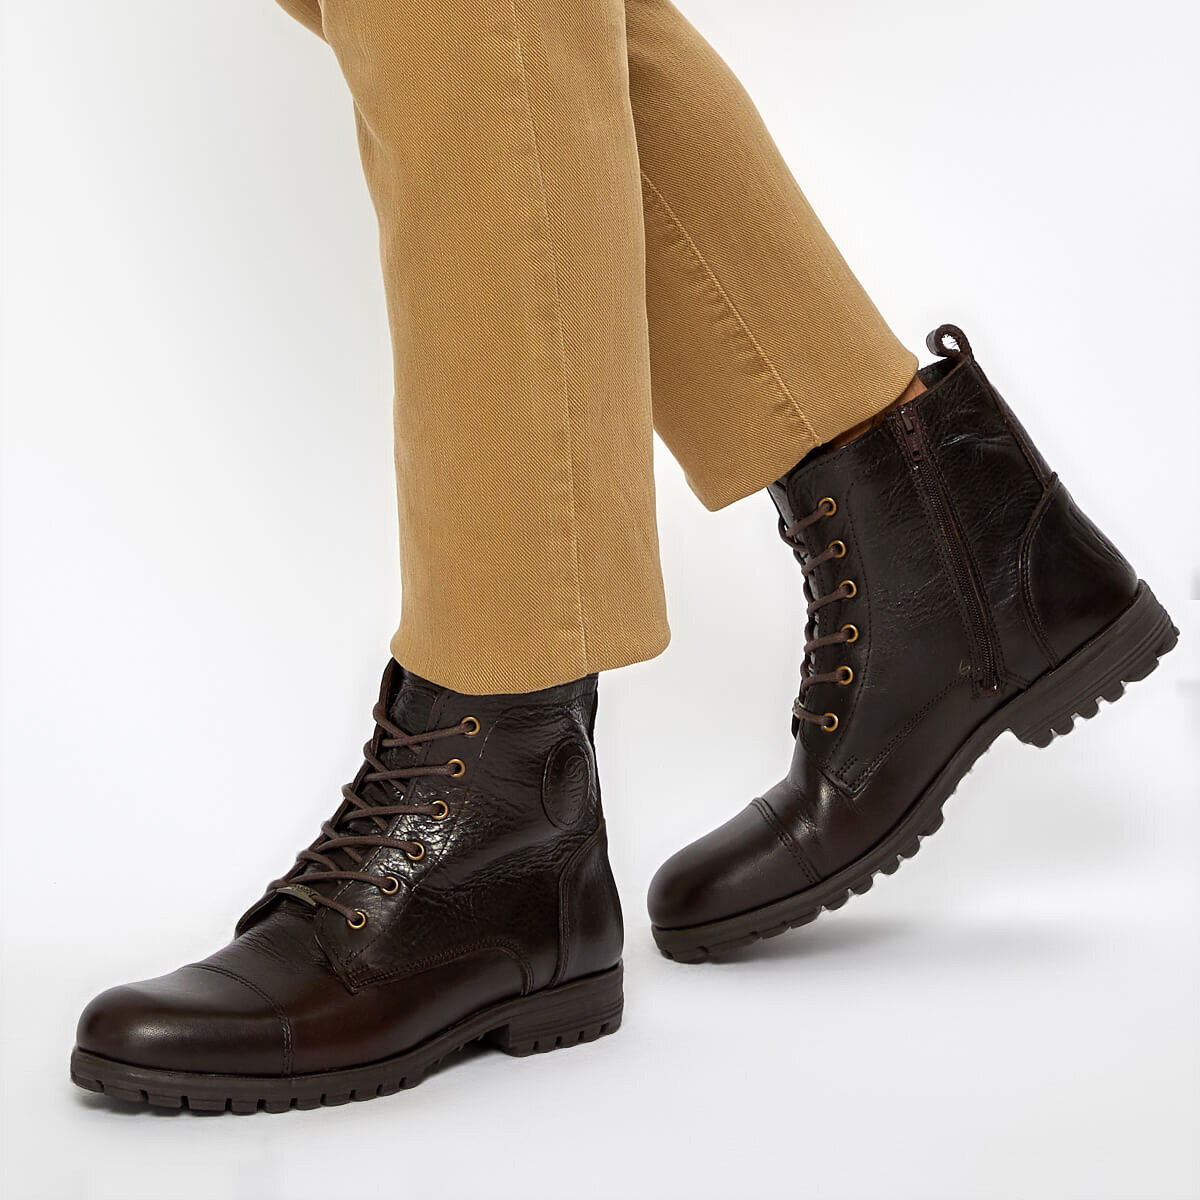 FLO 211352 9PR Brown Men Boots By Dockers The Gerle